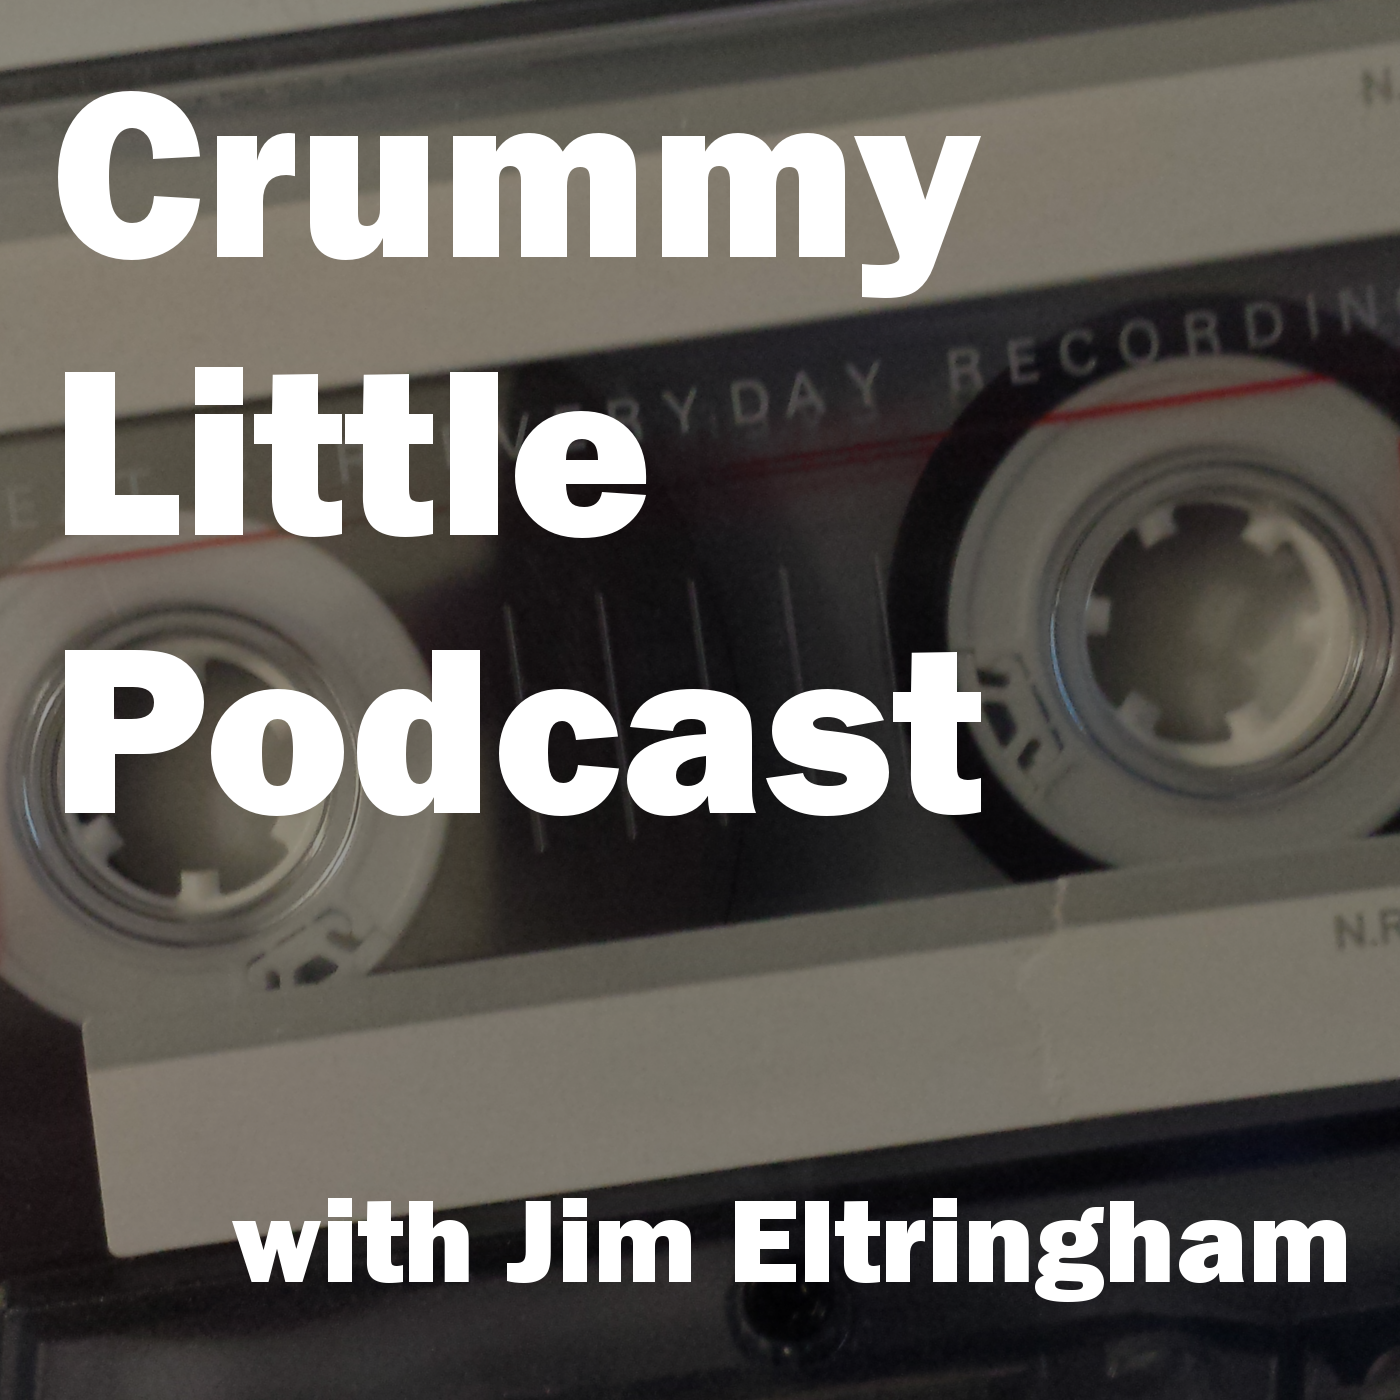 Crummy Little Podcast